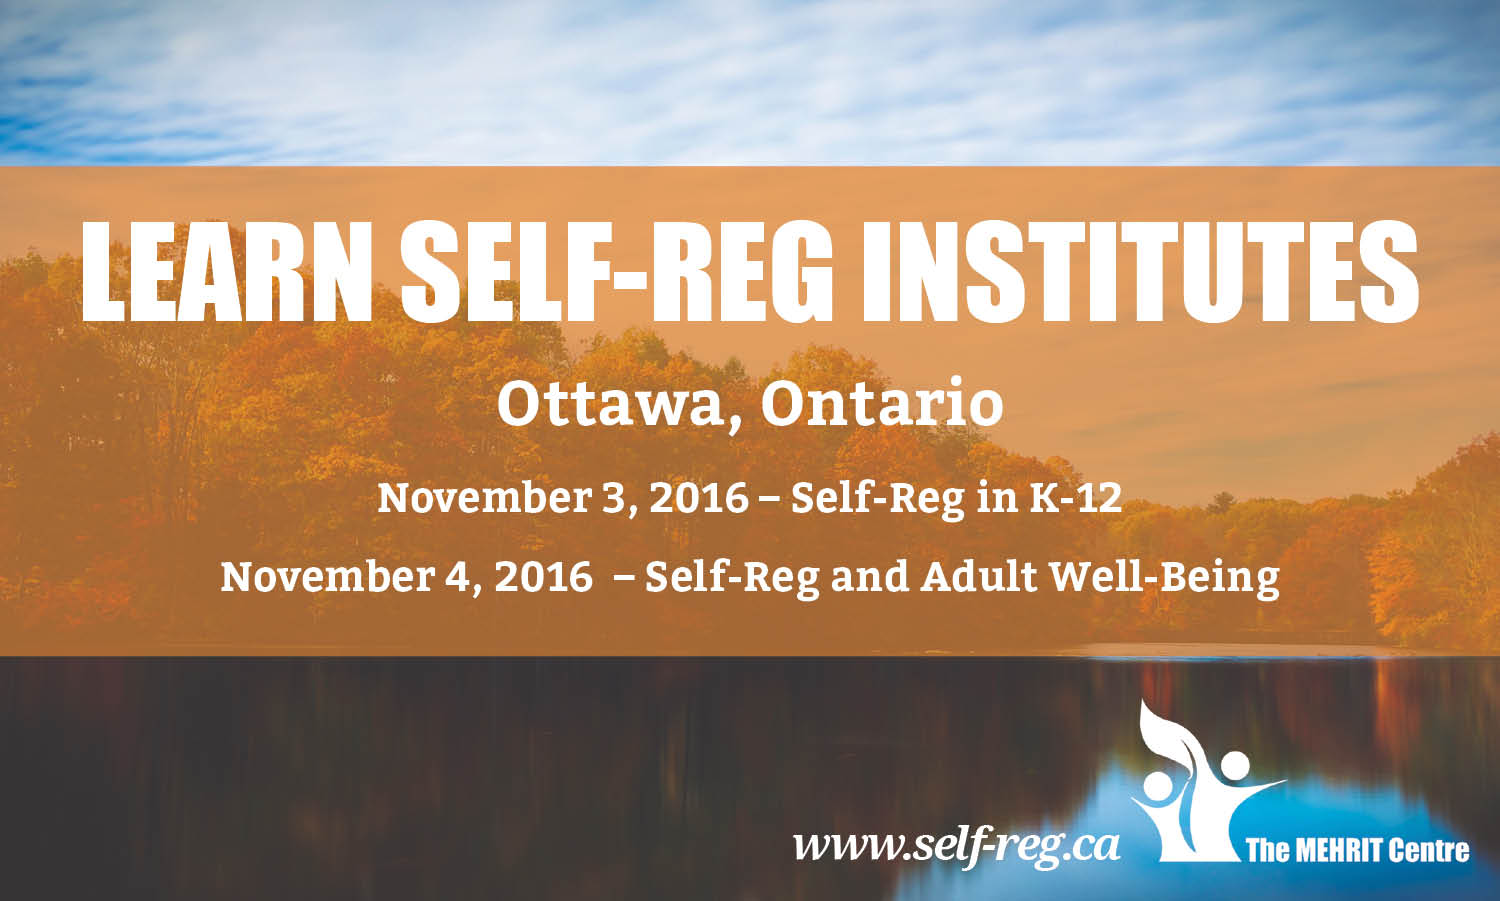 Learn Self-Reg Institutes Ottawa, Ontario